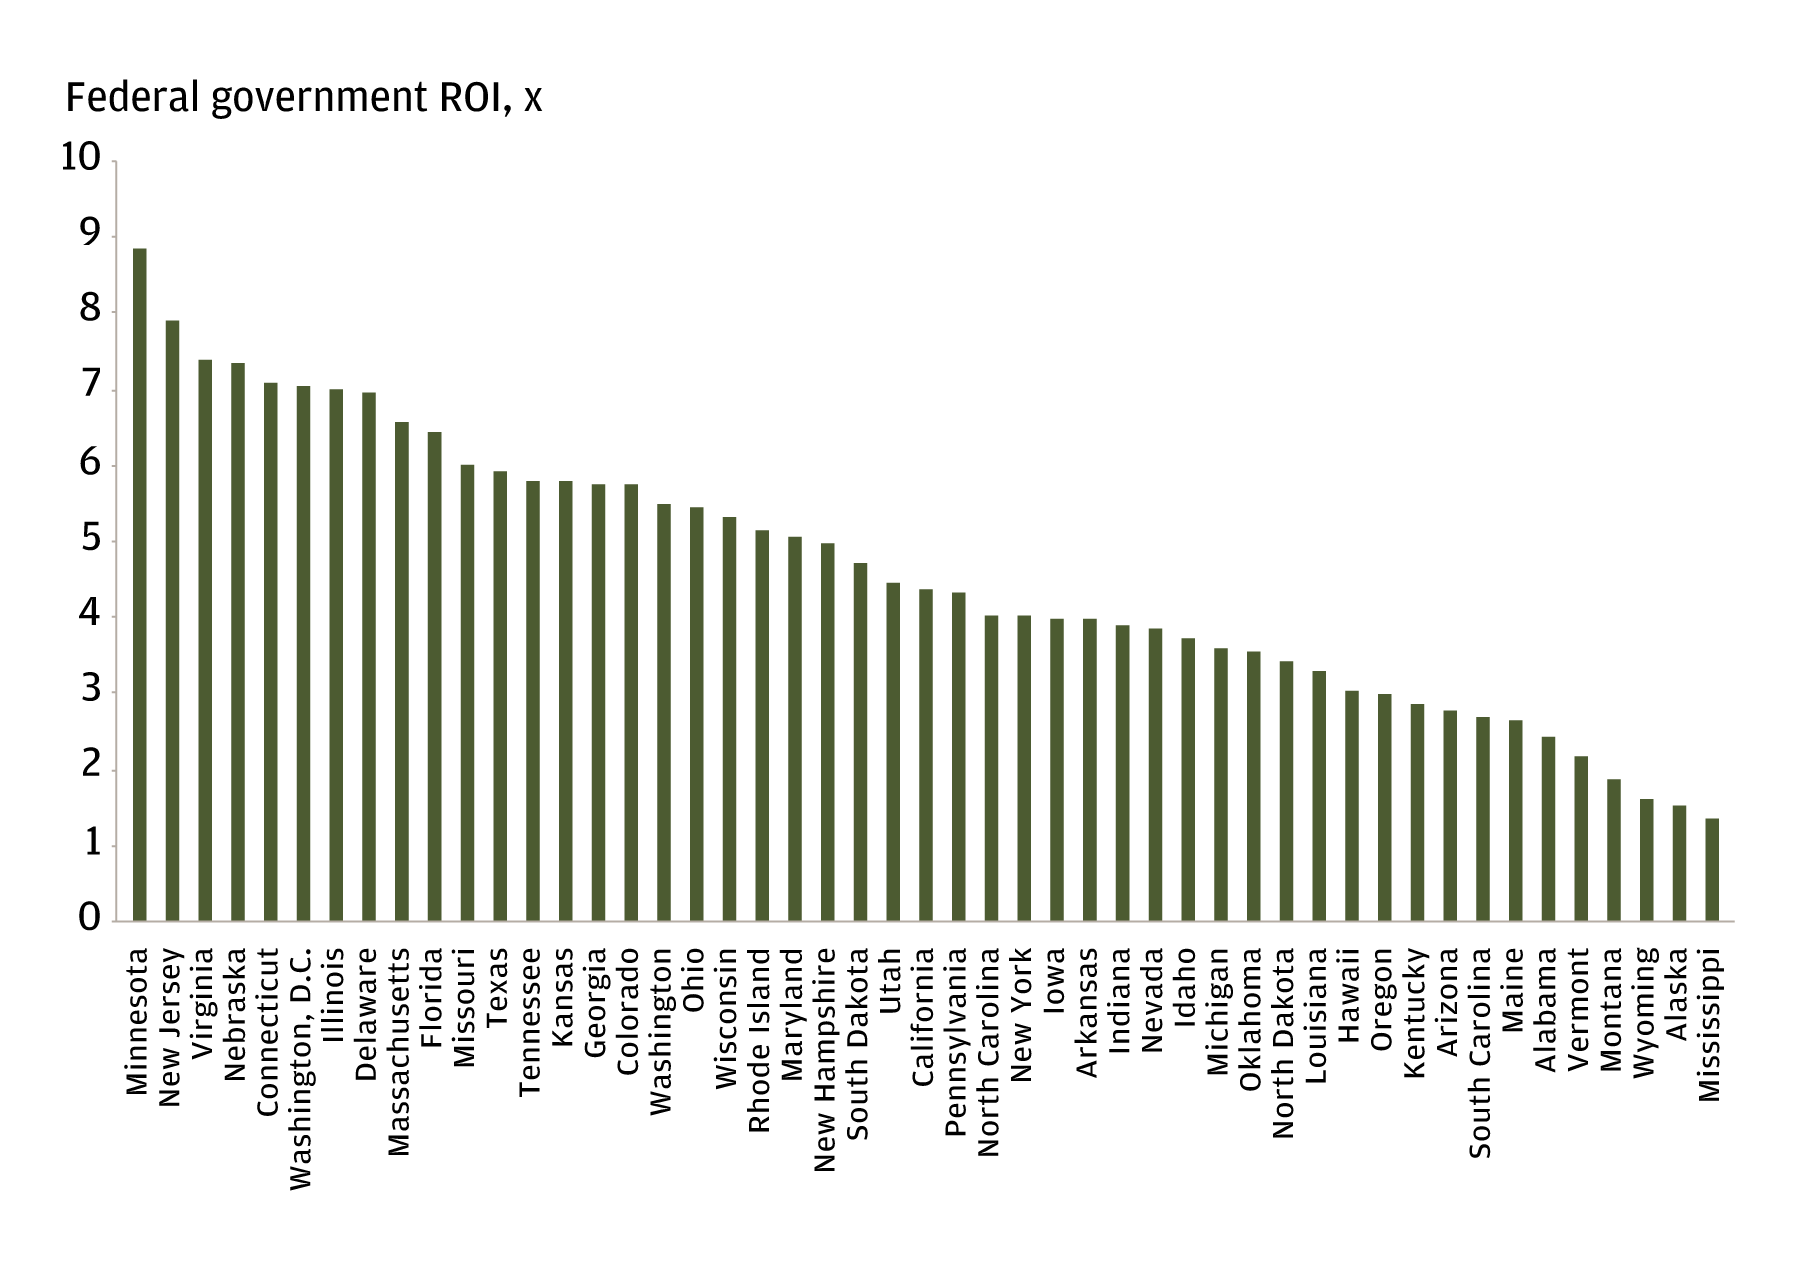 The bar chart displays the return on investment (ROI) for the federal government of each U.S. state. It highlights that states vary in their ROI: Minnesota, New Jersey and Virginia have some of the highest ROI, whereas Wyoming, Alaska and Mississippi are on the lower end.